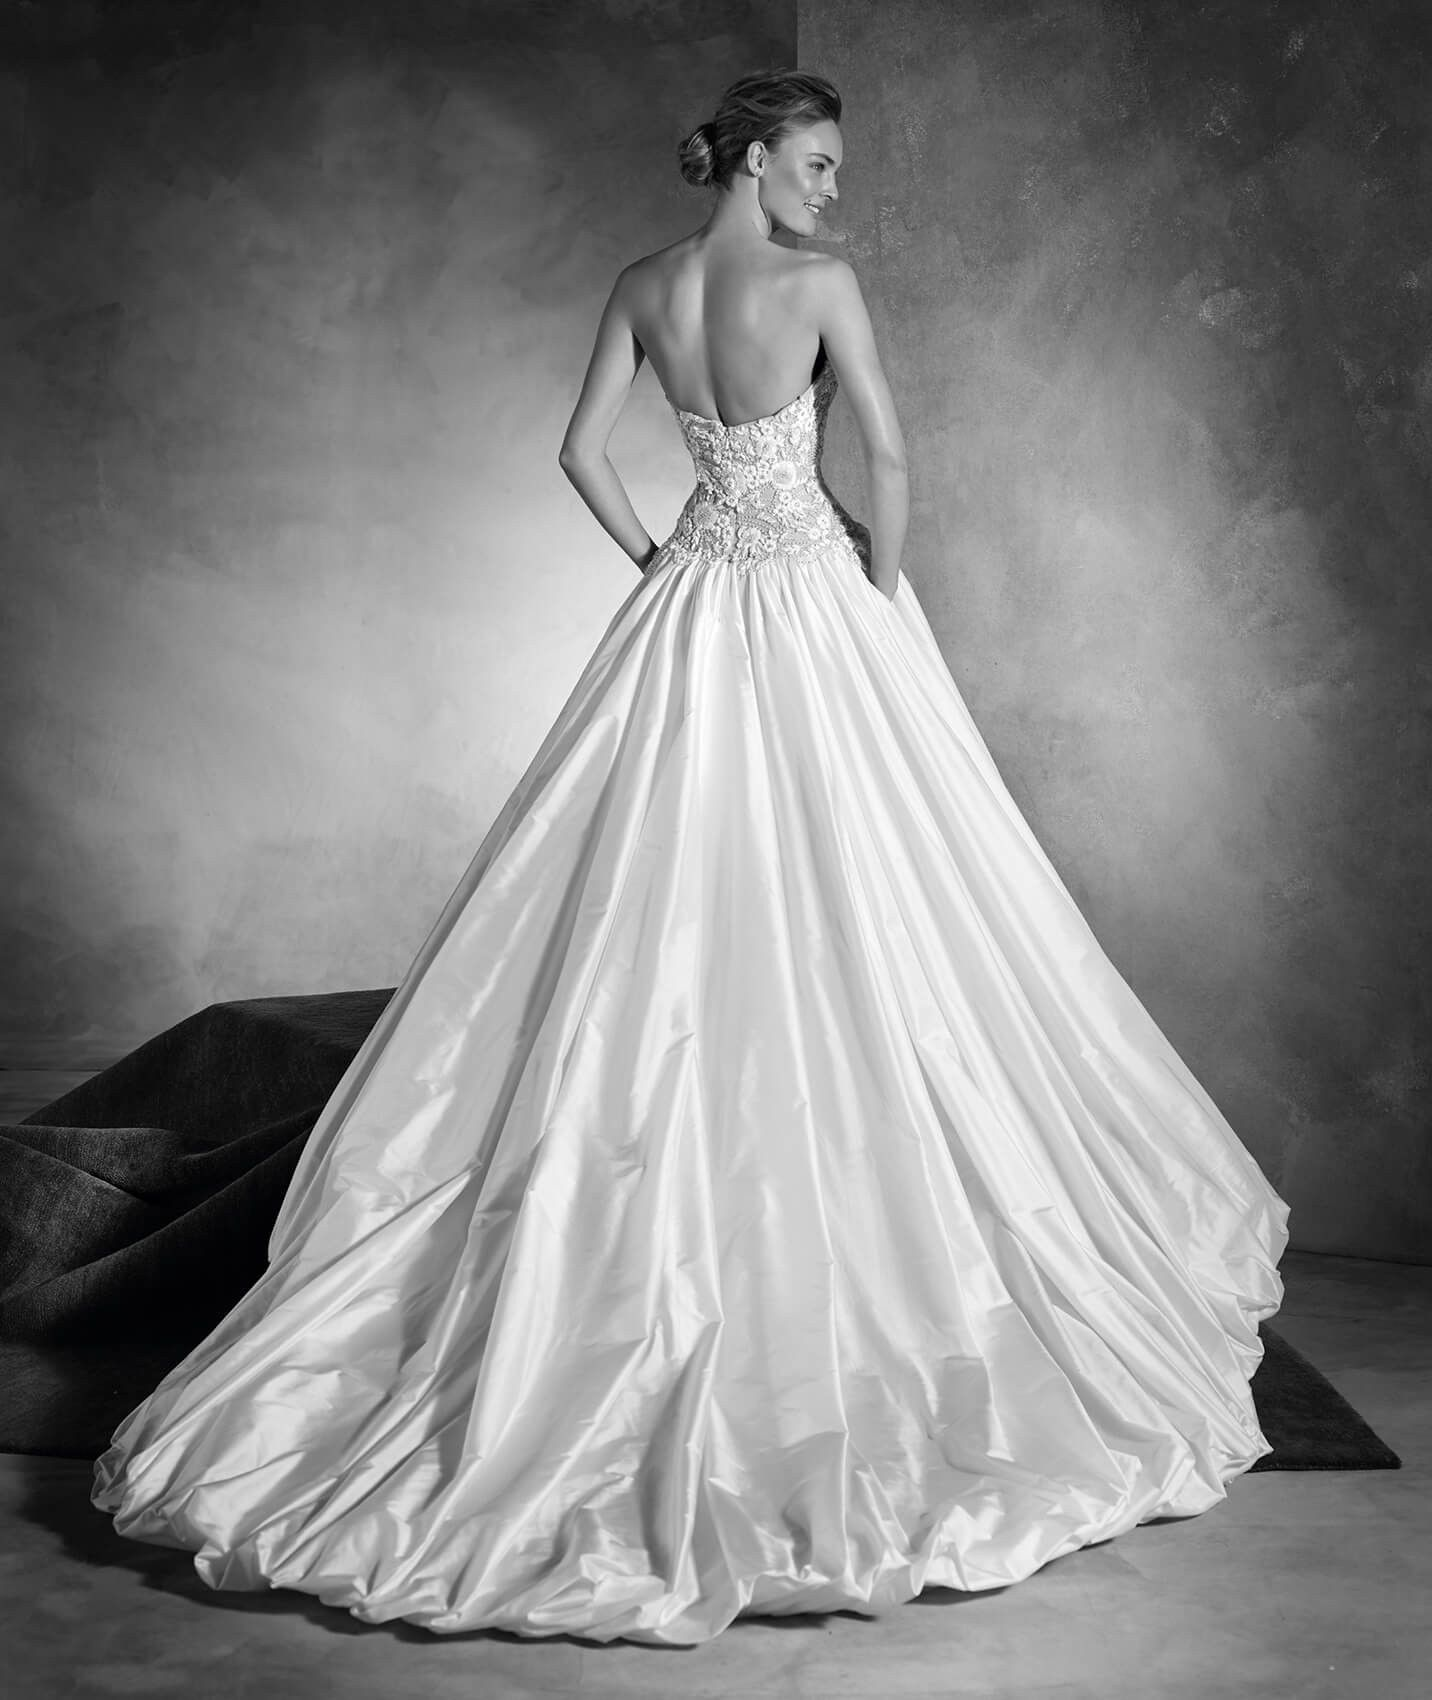 Silk Taffeta Wedding Gowns: Wedding Dress In Silk Taffeta, Drop Waist And